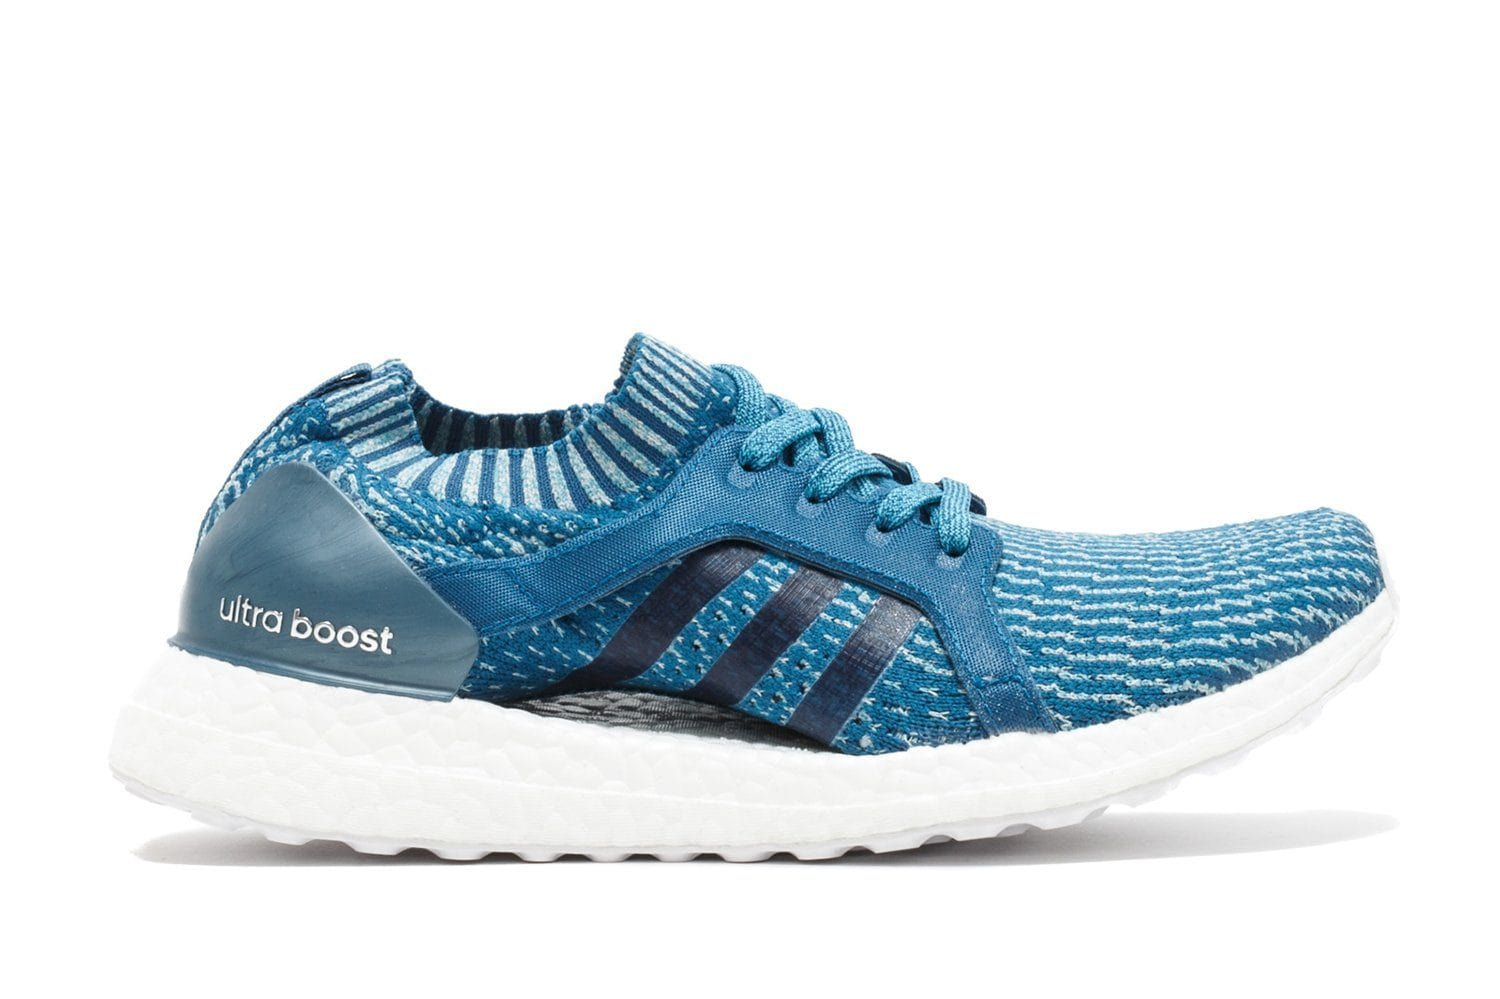 low priced 47e0a 4806b ULTRABOOST PARLEY - BB1978